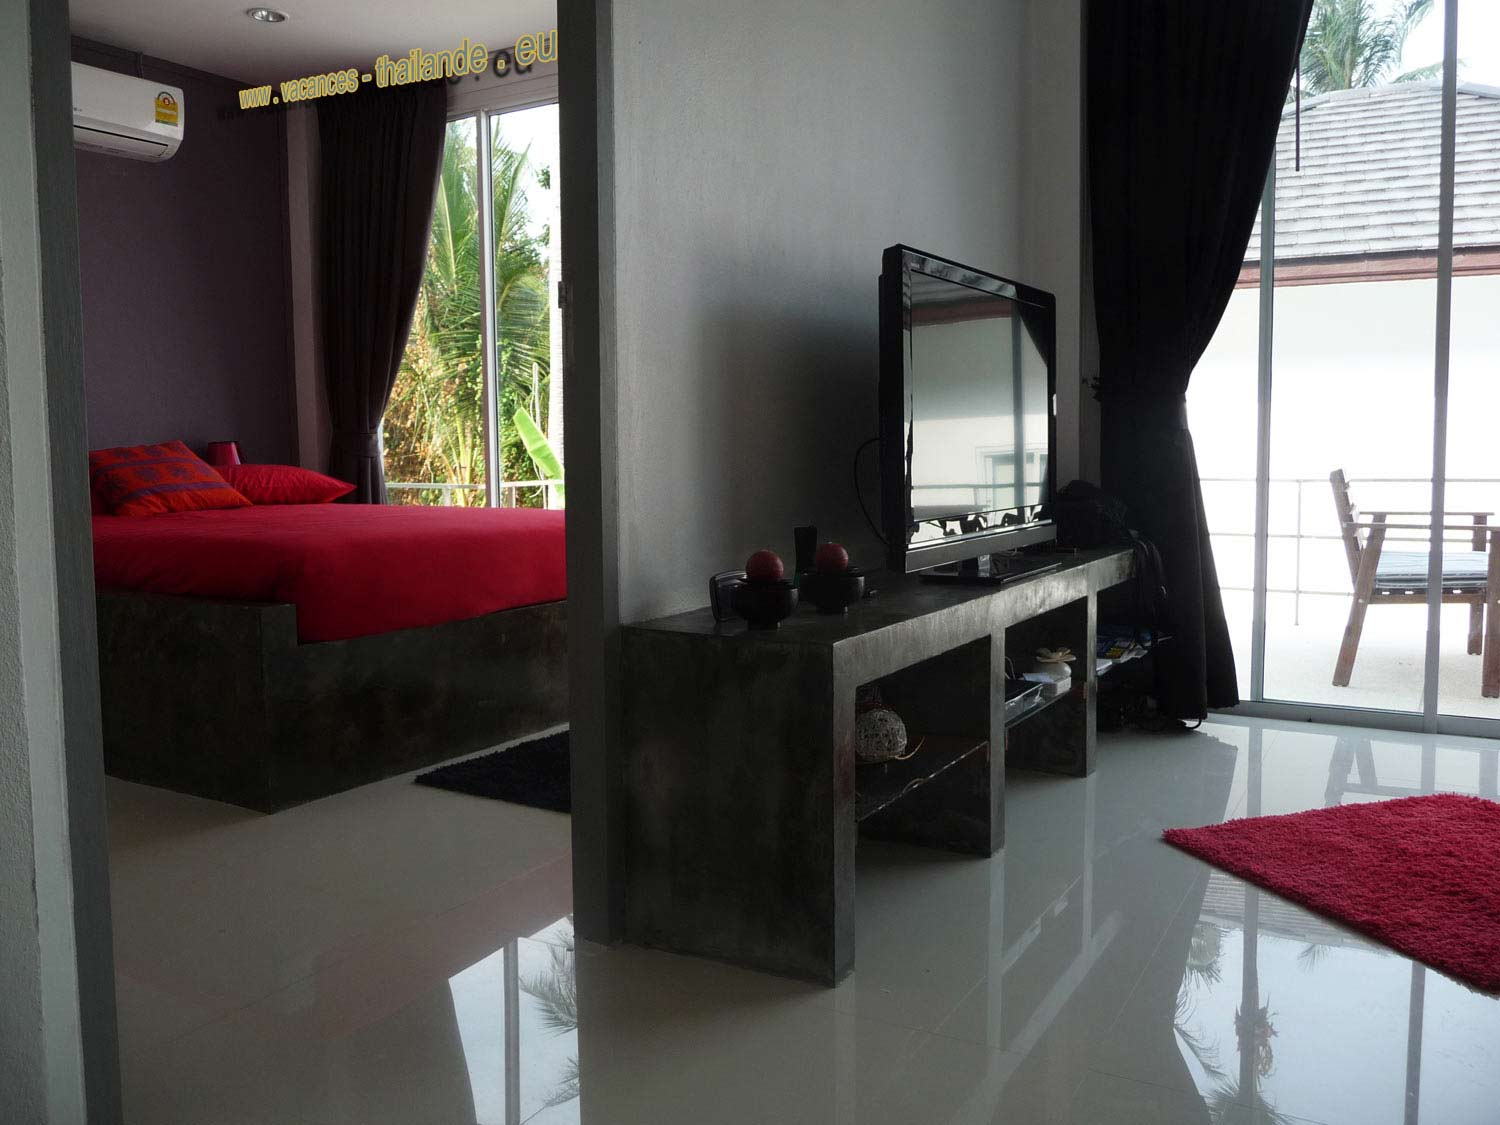 Photo 53 English cheap rent our house Thailand piece of life house Chaweng Koh samui